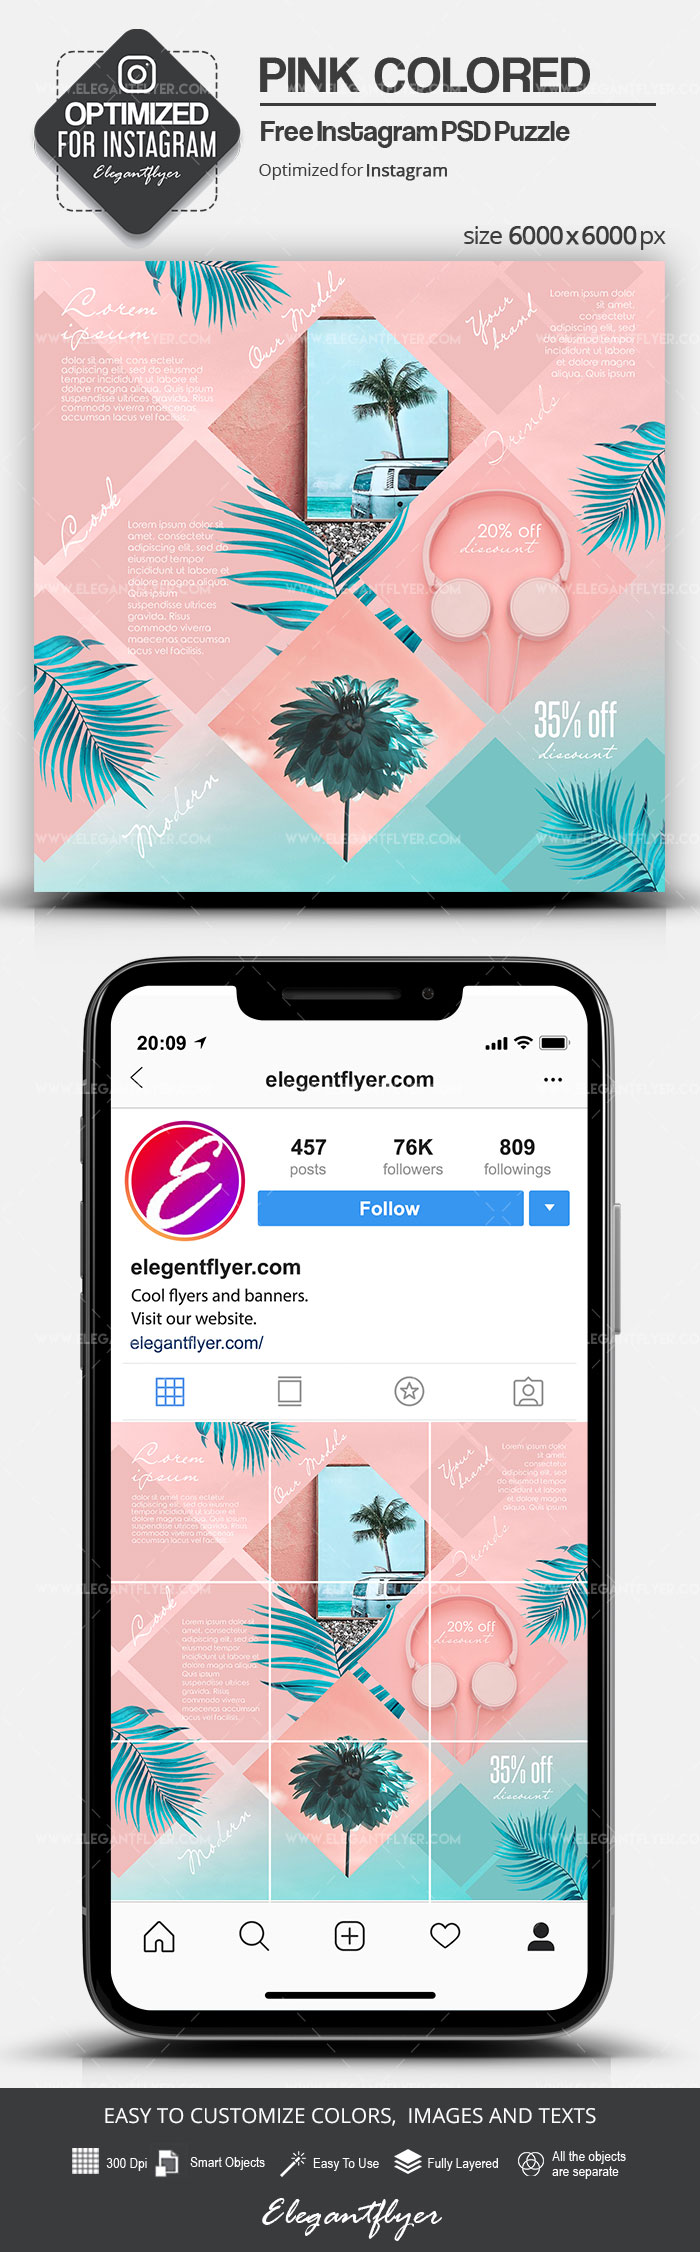 Pink Colored – Free Instagram PSD Puzzle